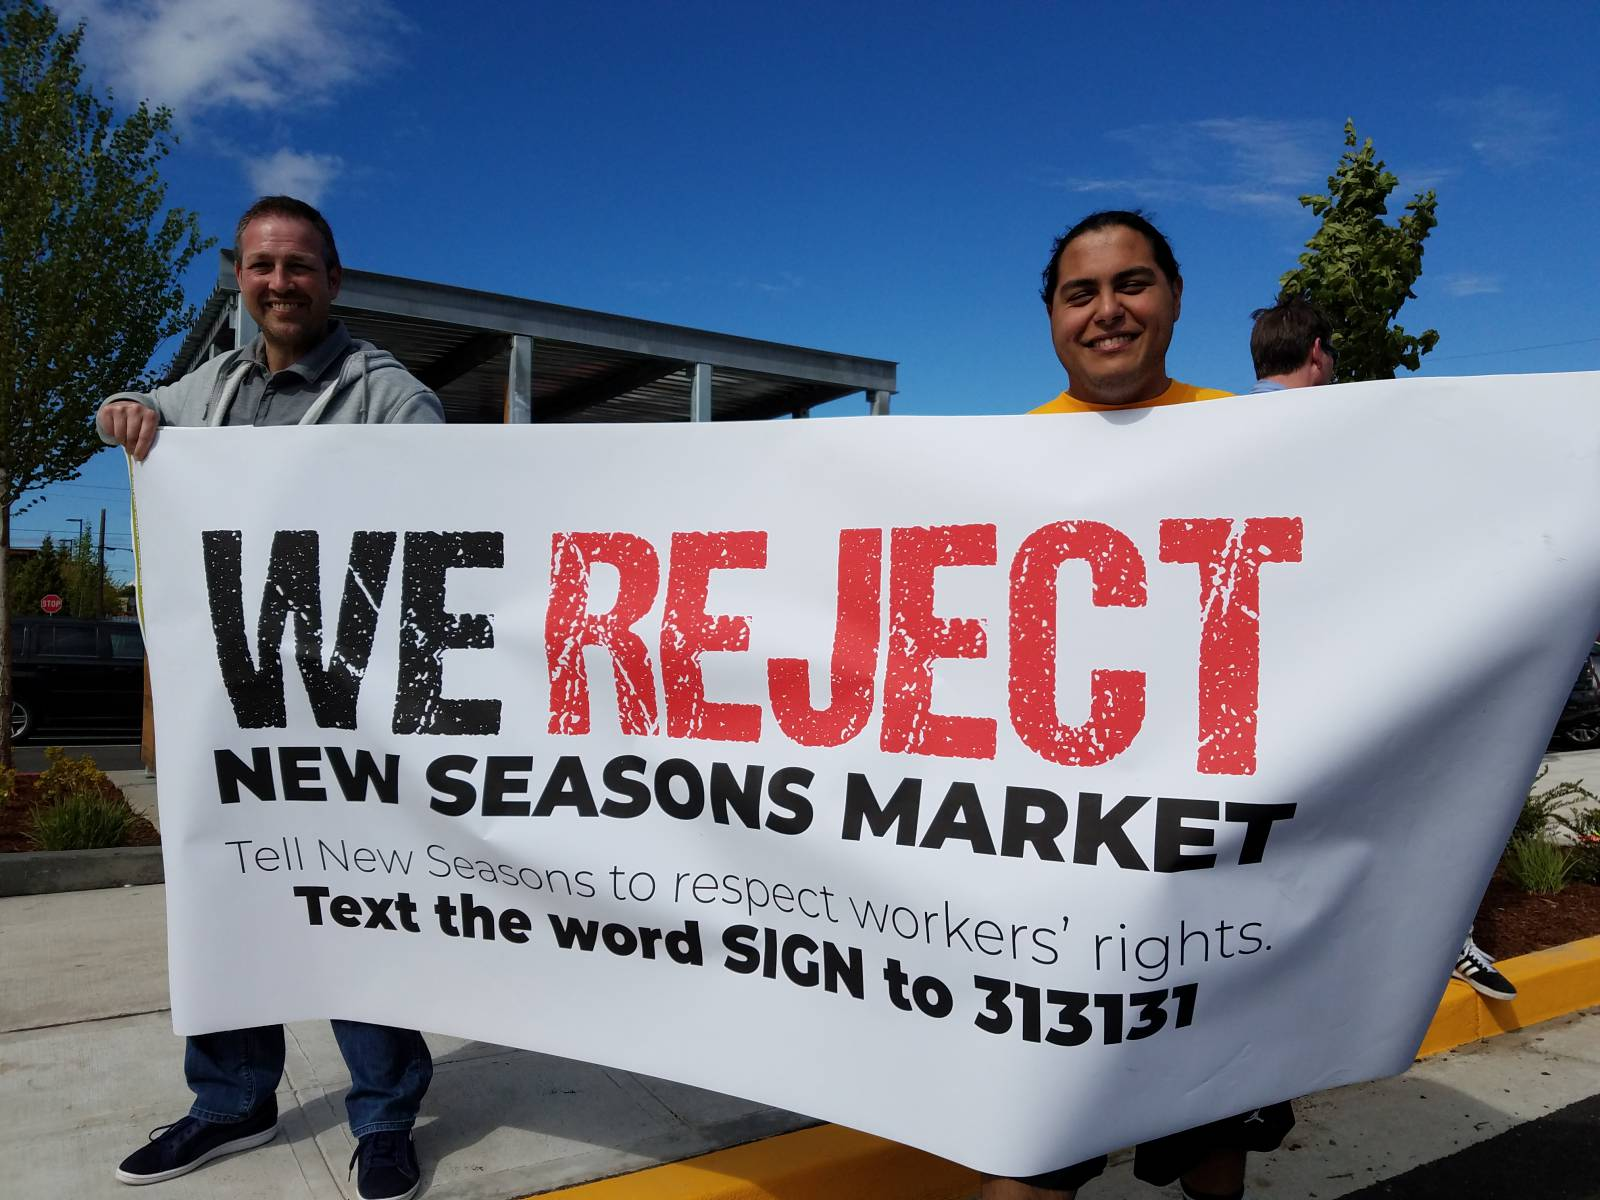 Seattle union workers hold day of action to protest New Seasons Market